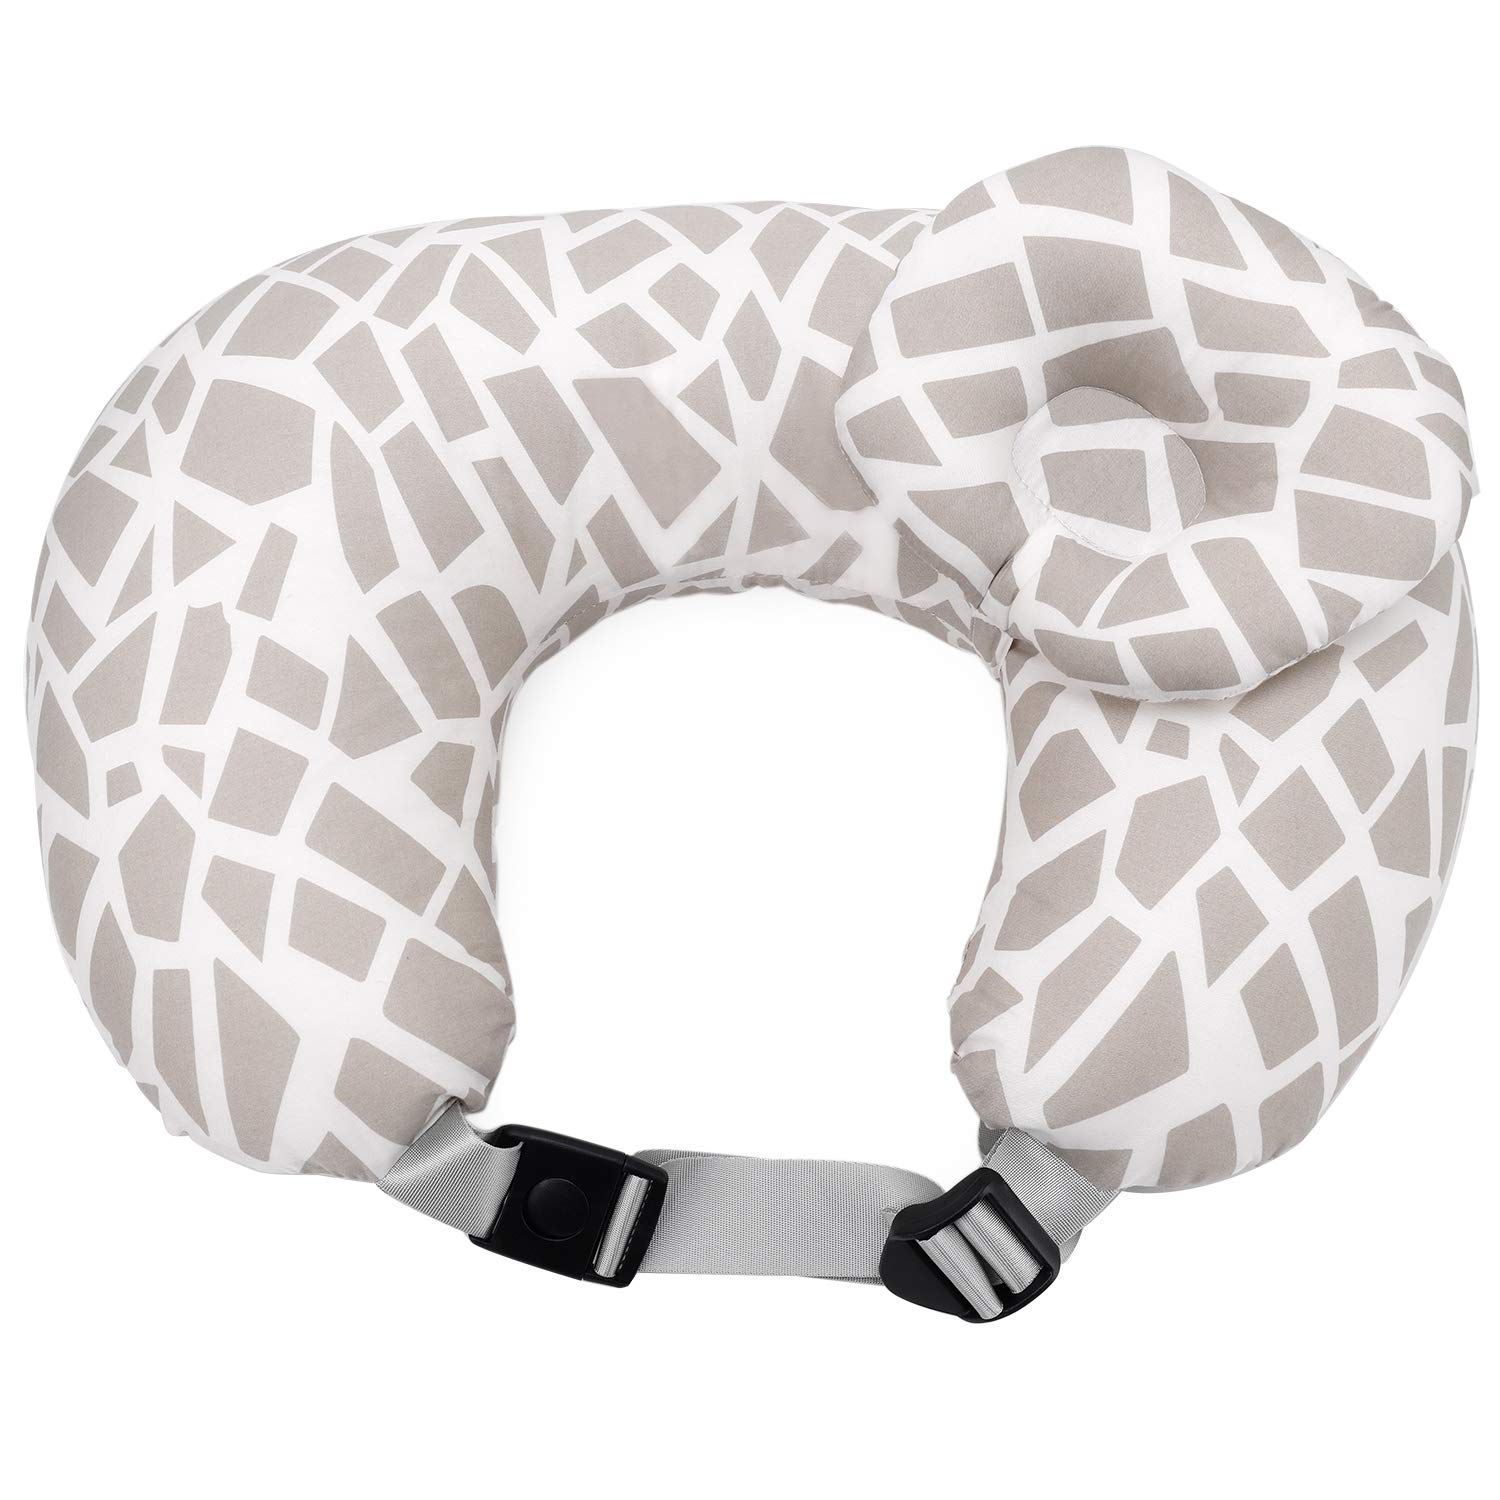 ISPINNER Nursing Pillow with Adjustable Belt | Easy Clean Newborn Baby Breastfeeding Pillow Cushion